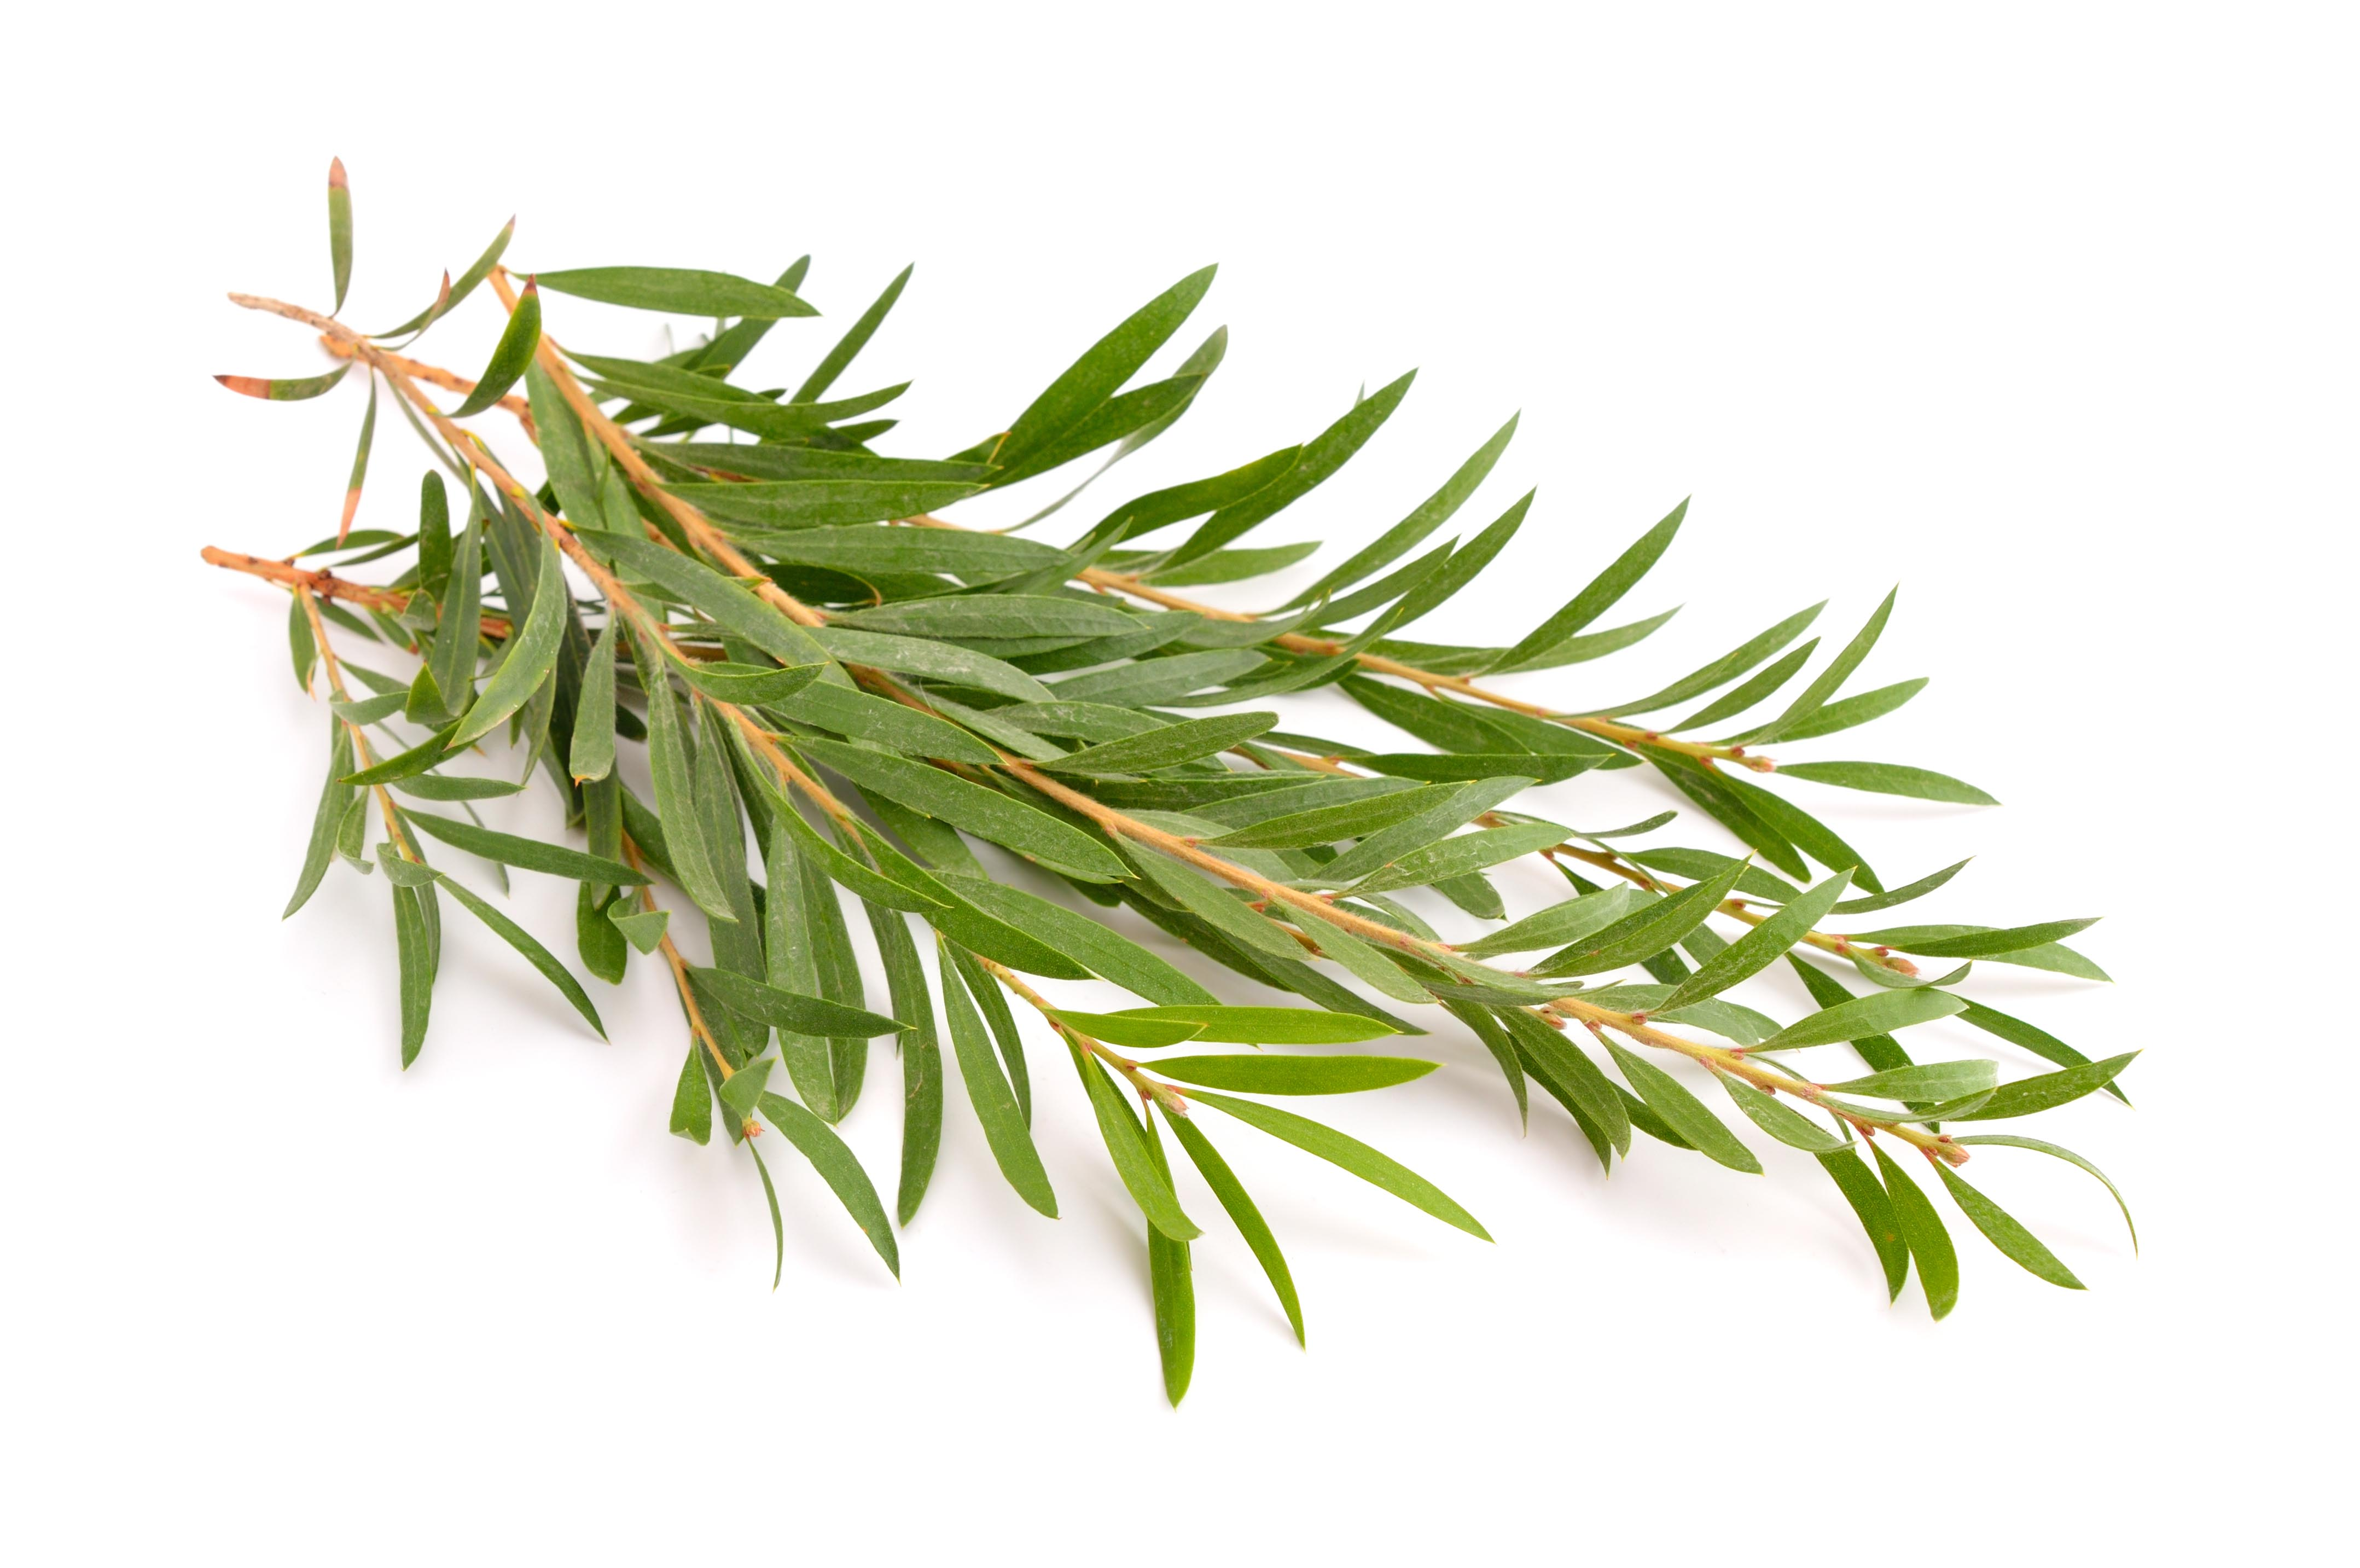 Best quality natural essential oils including Tea Tree Oil - Leptospermum Scoparium, Manuka, and other fragrance & perfume oils at the most discount rates by BMV Fragrances in UP, India.